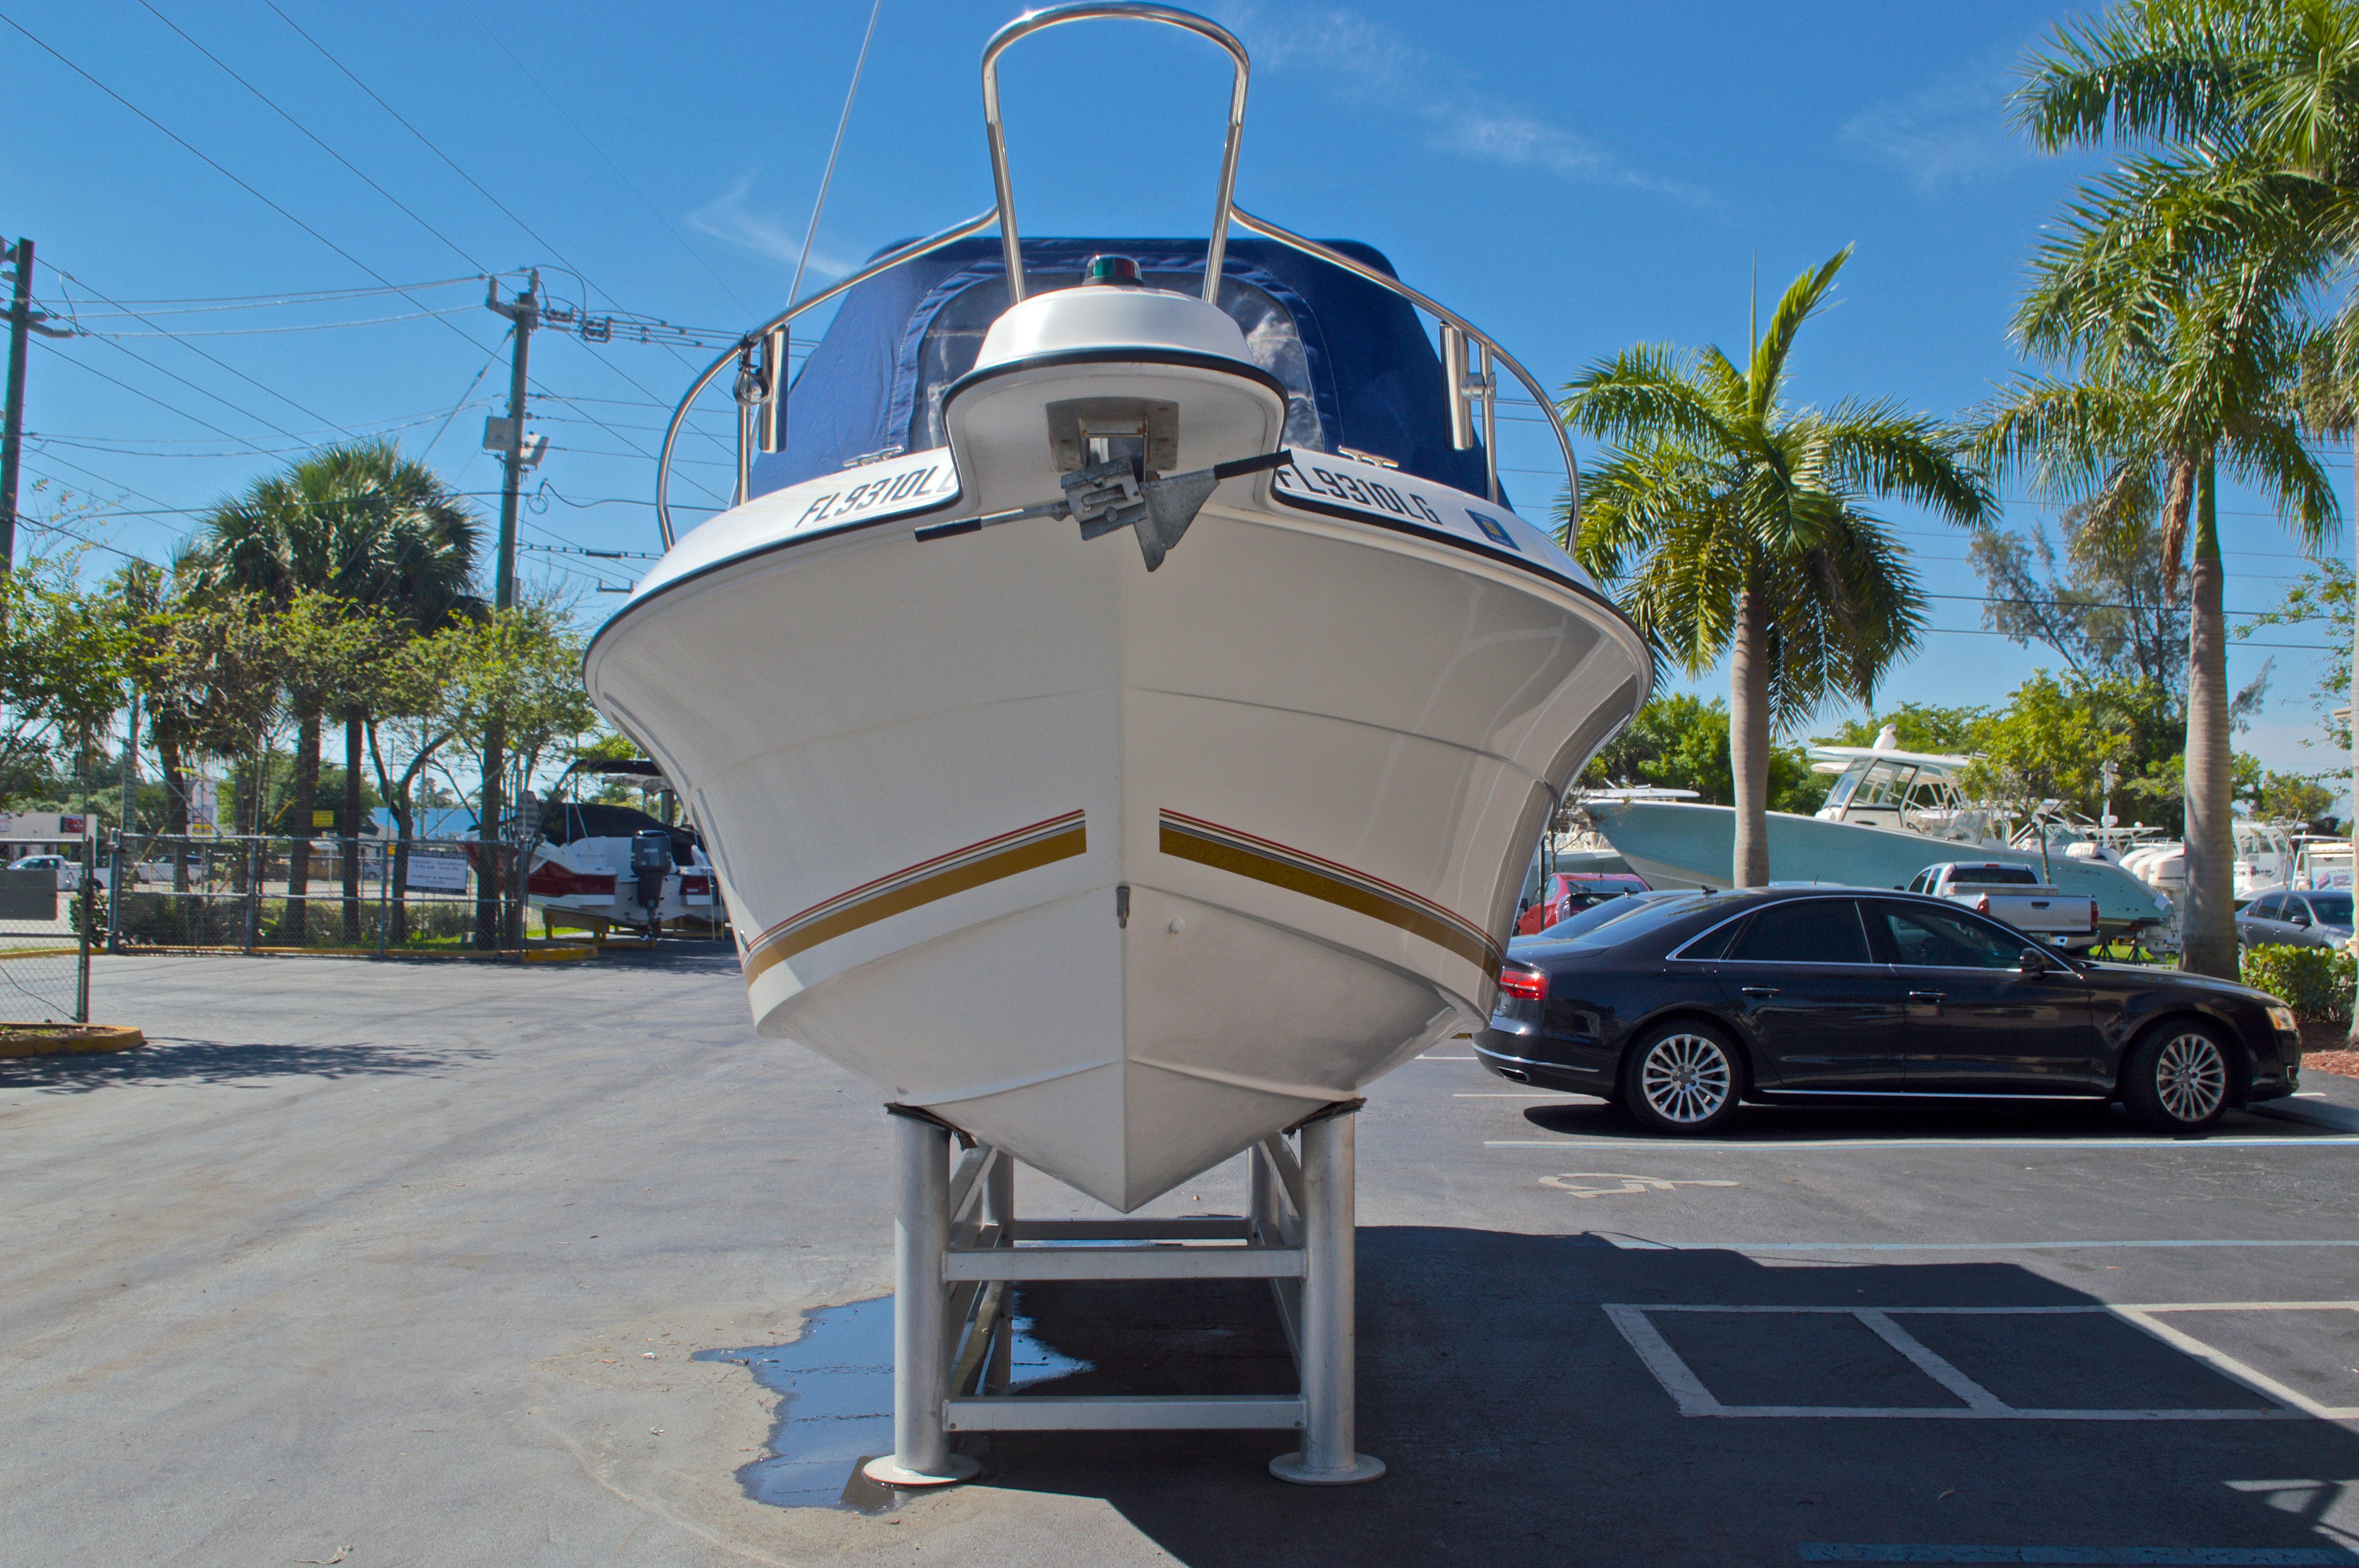 Thumbnail 2 for Used 2000 Aquasport 215 Osprey Sport DC boat for sale in West Palm Beach, FL